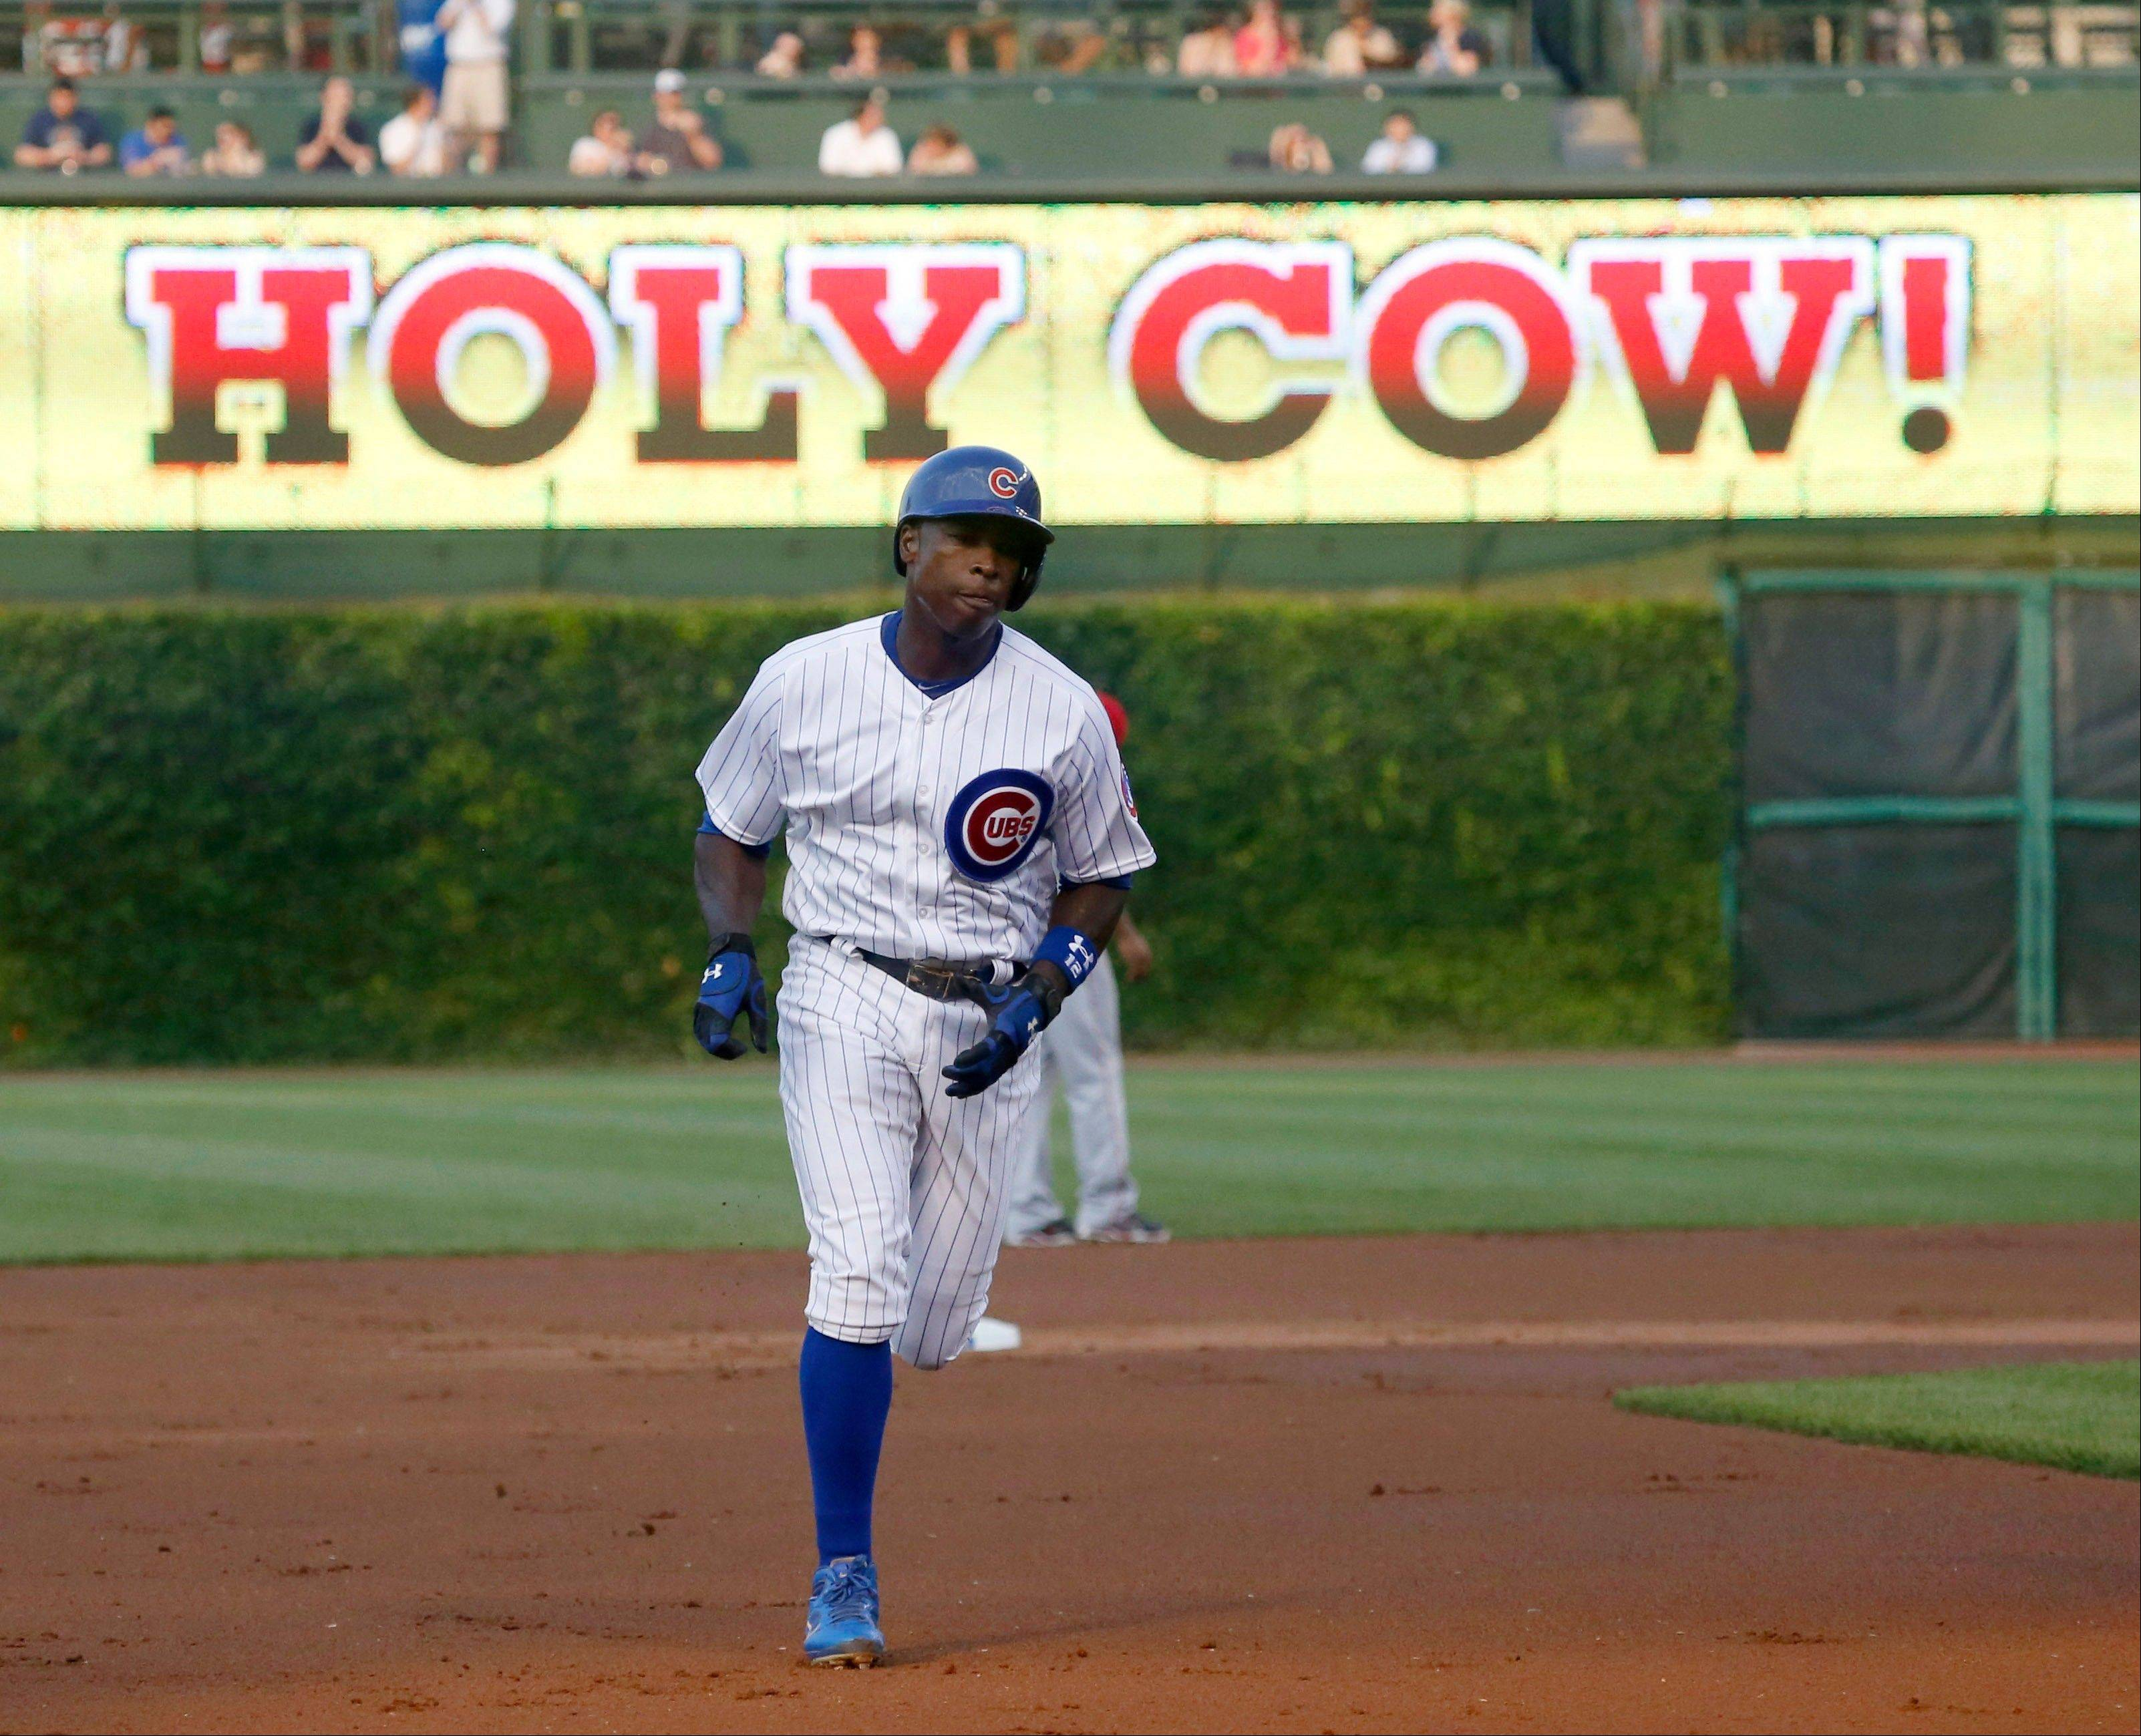 Alfonso Soriano was never worth the money the Cubs paid for him seven years ago, but that's hardly his fault.